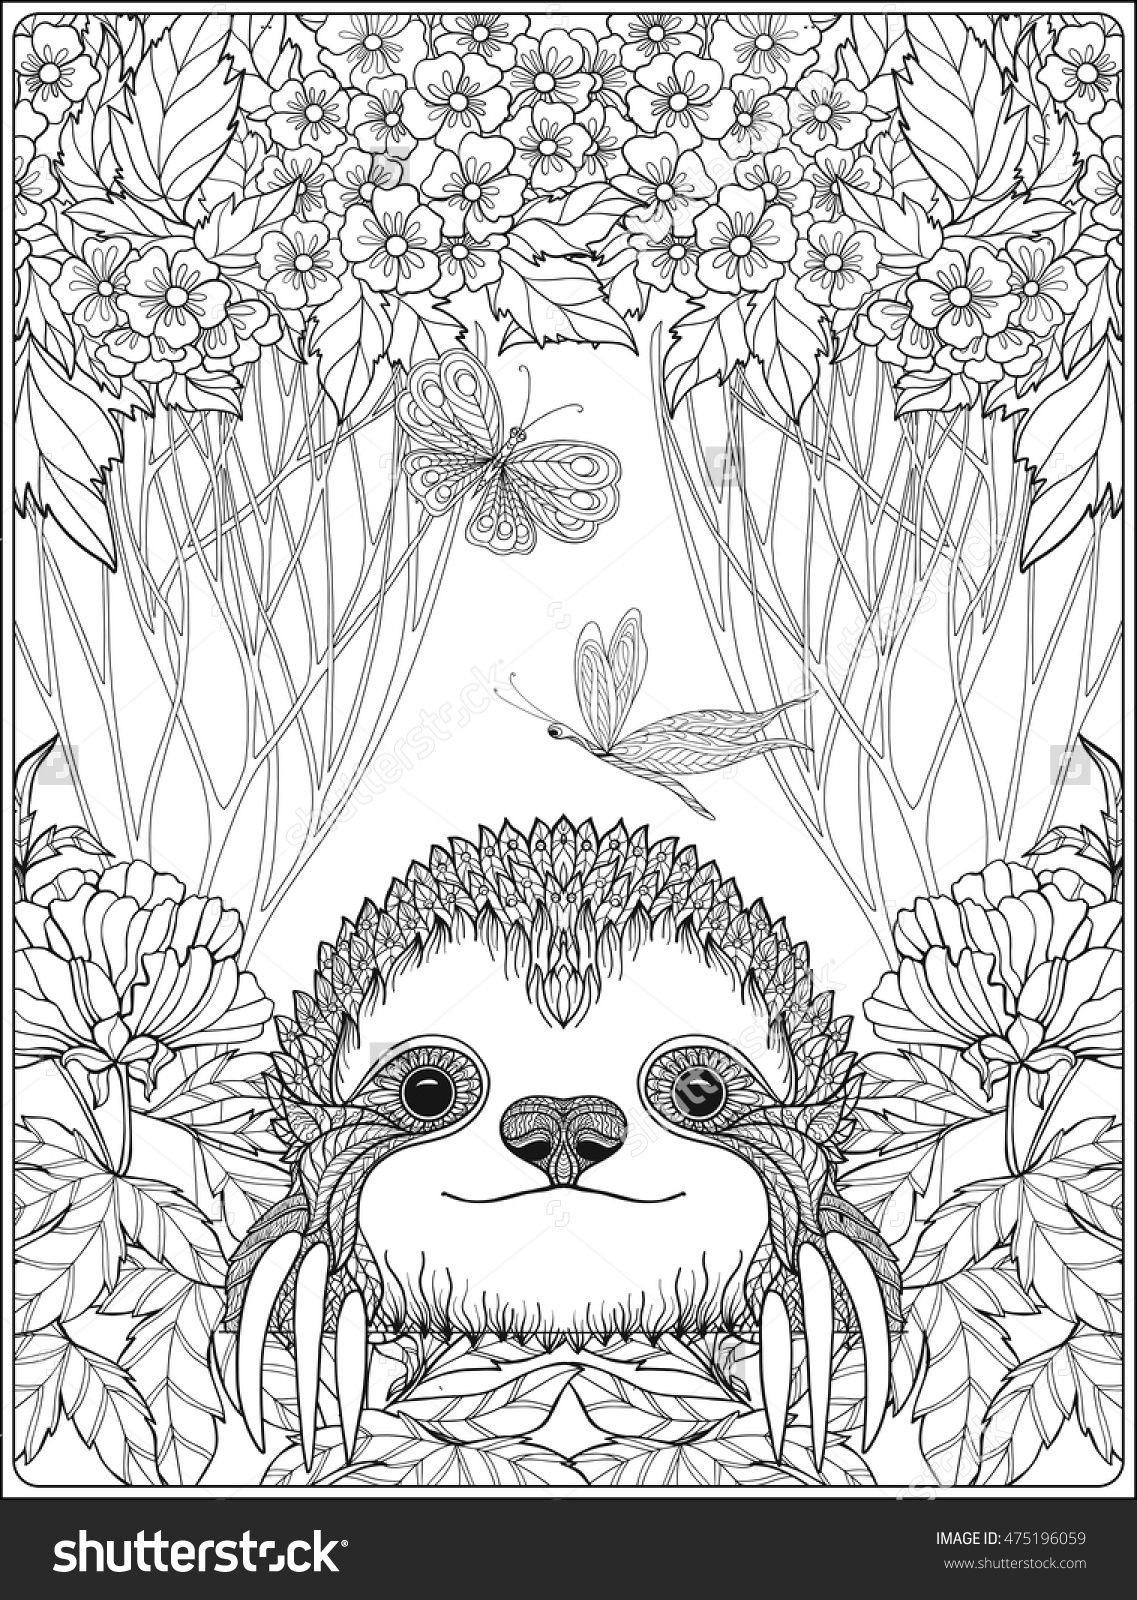 sloth pictures to print three toed sloth coloring pages at getcoloringscom free to print sloth pictures